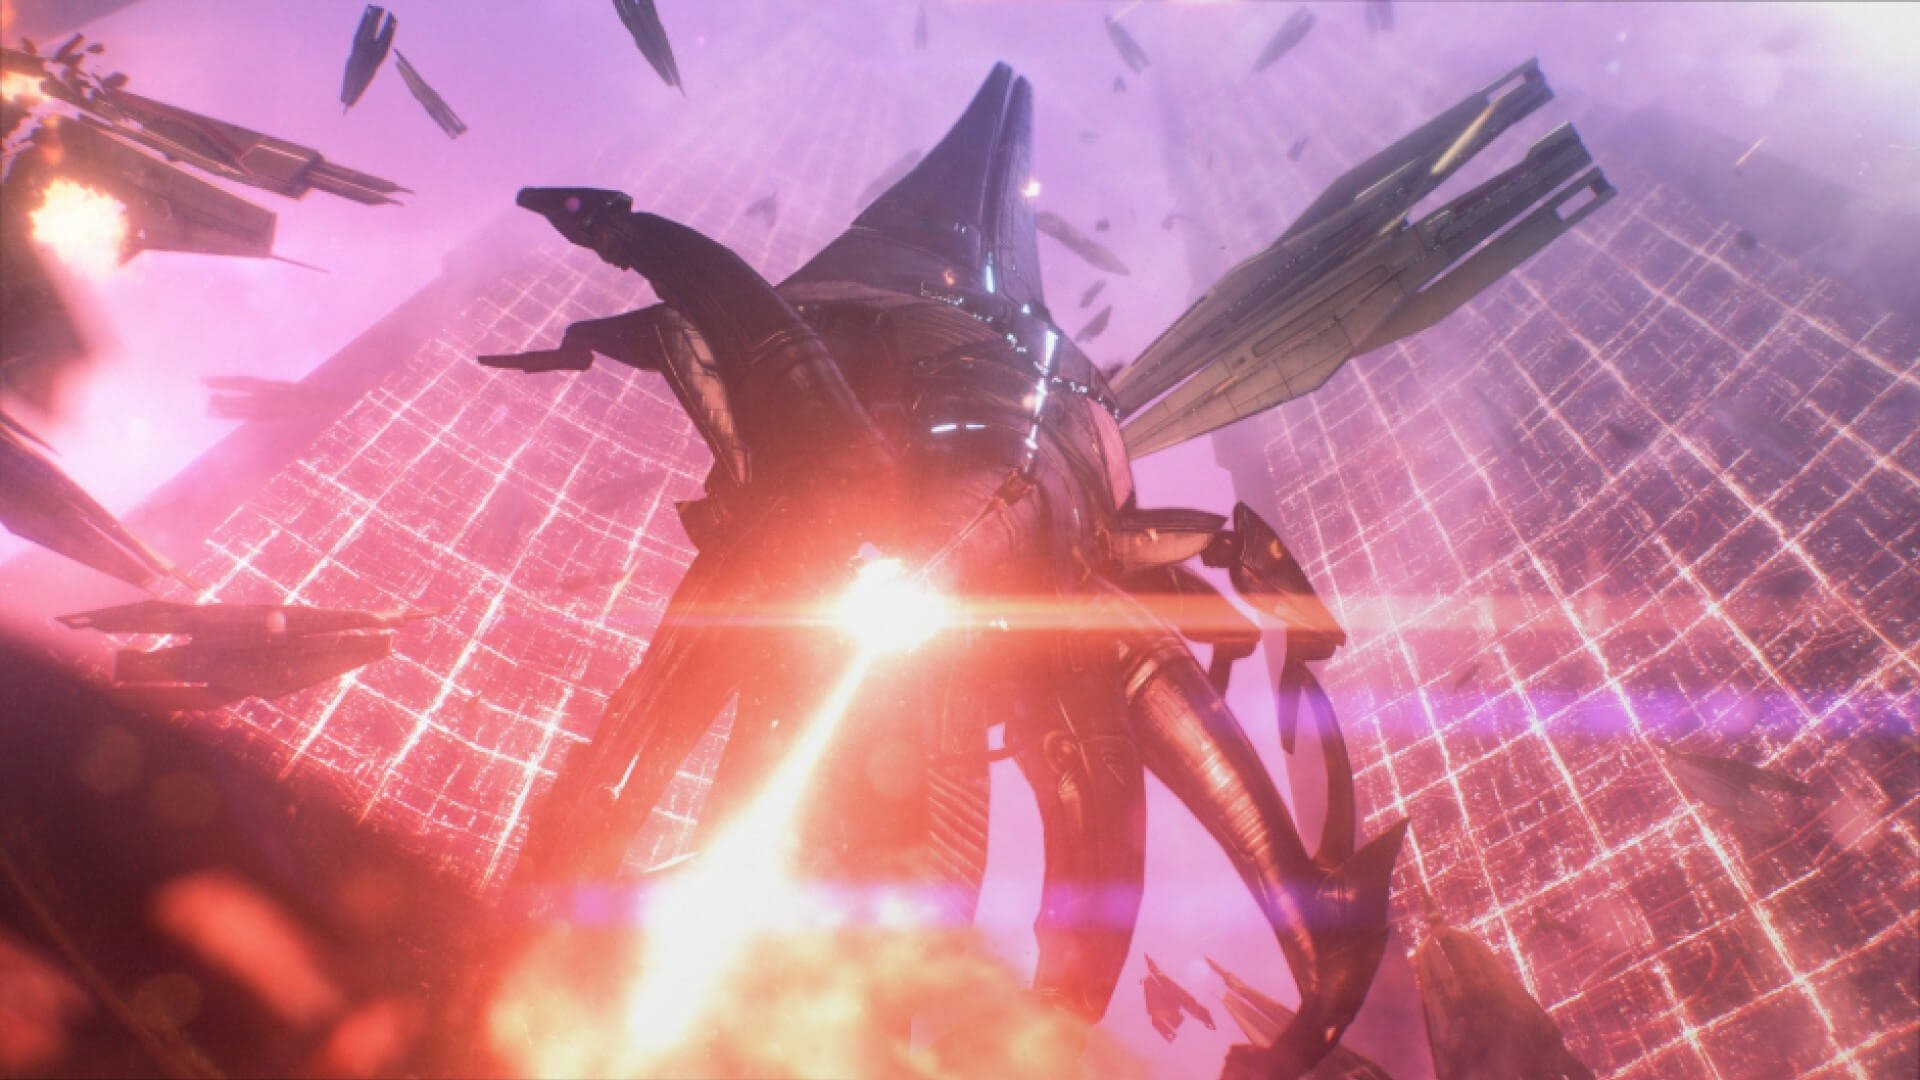 Mass Effect Legendary Edition: How to Save Everyone on the Suicide Mission